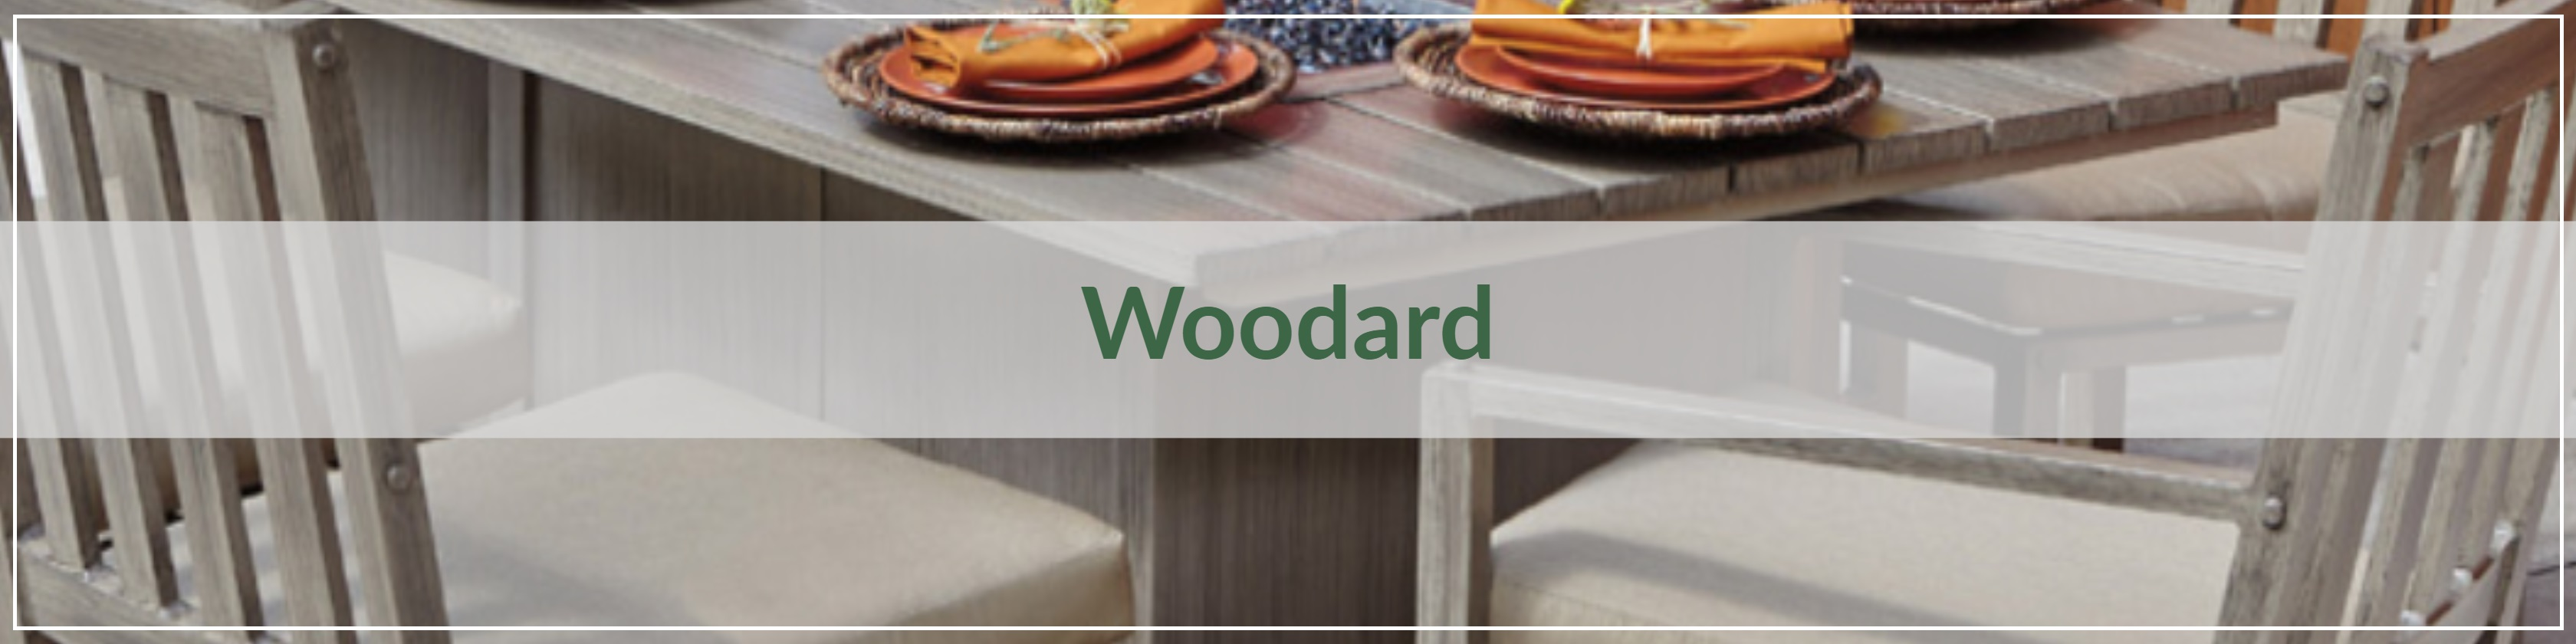 Woodard Extruded Aluminum Outdoor Dining